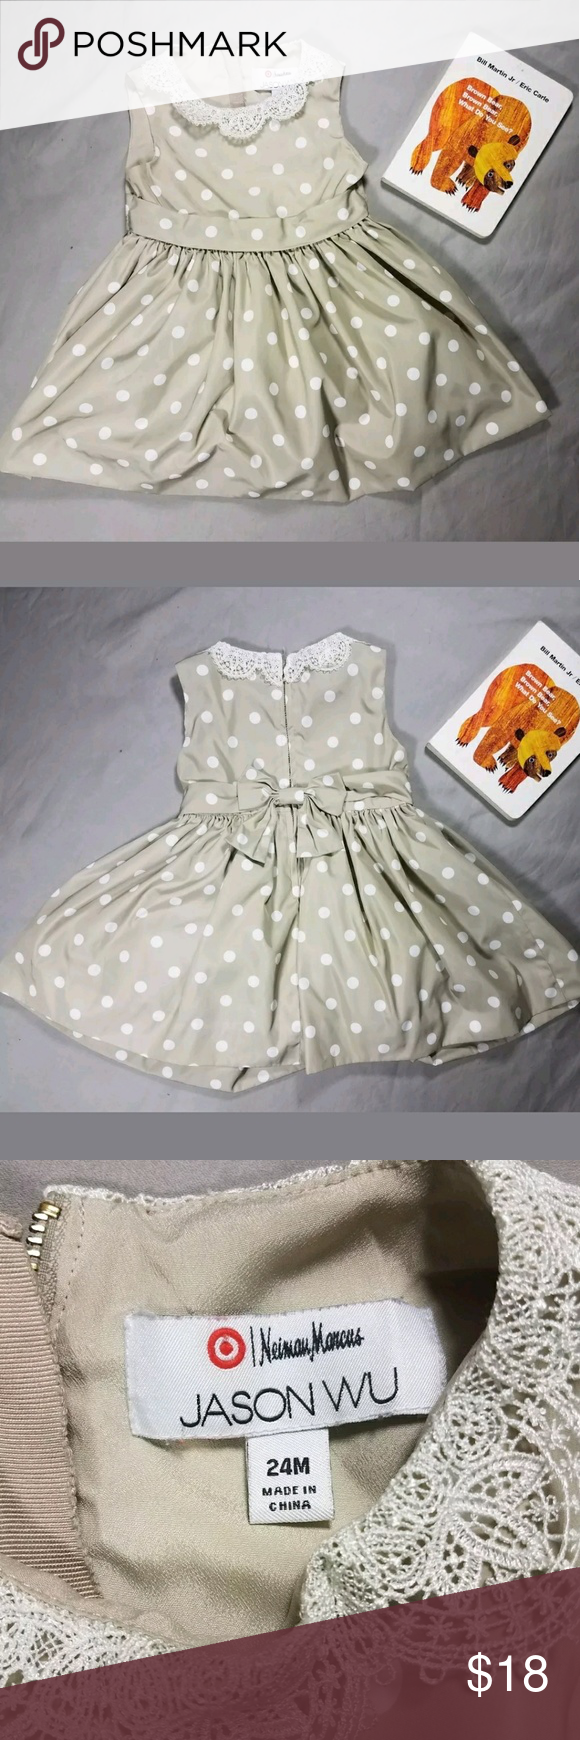 c142b720e Jason Wu for Target toddler girl party dress 24mos Neiman Marcus for Target  Collection Jason Wu Toddler girls tan polka dot party dress.